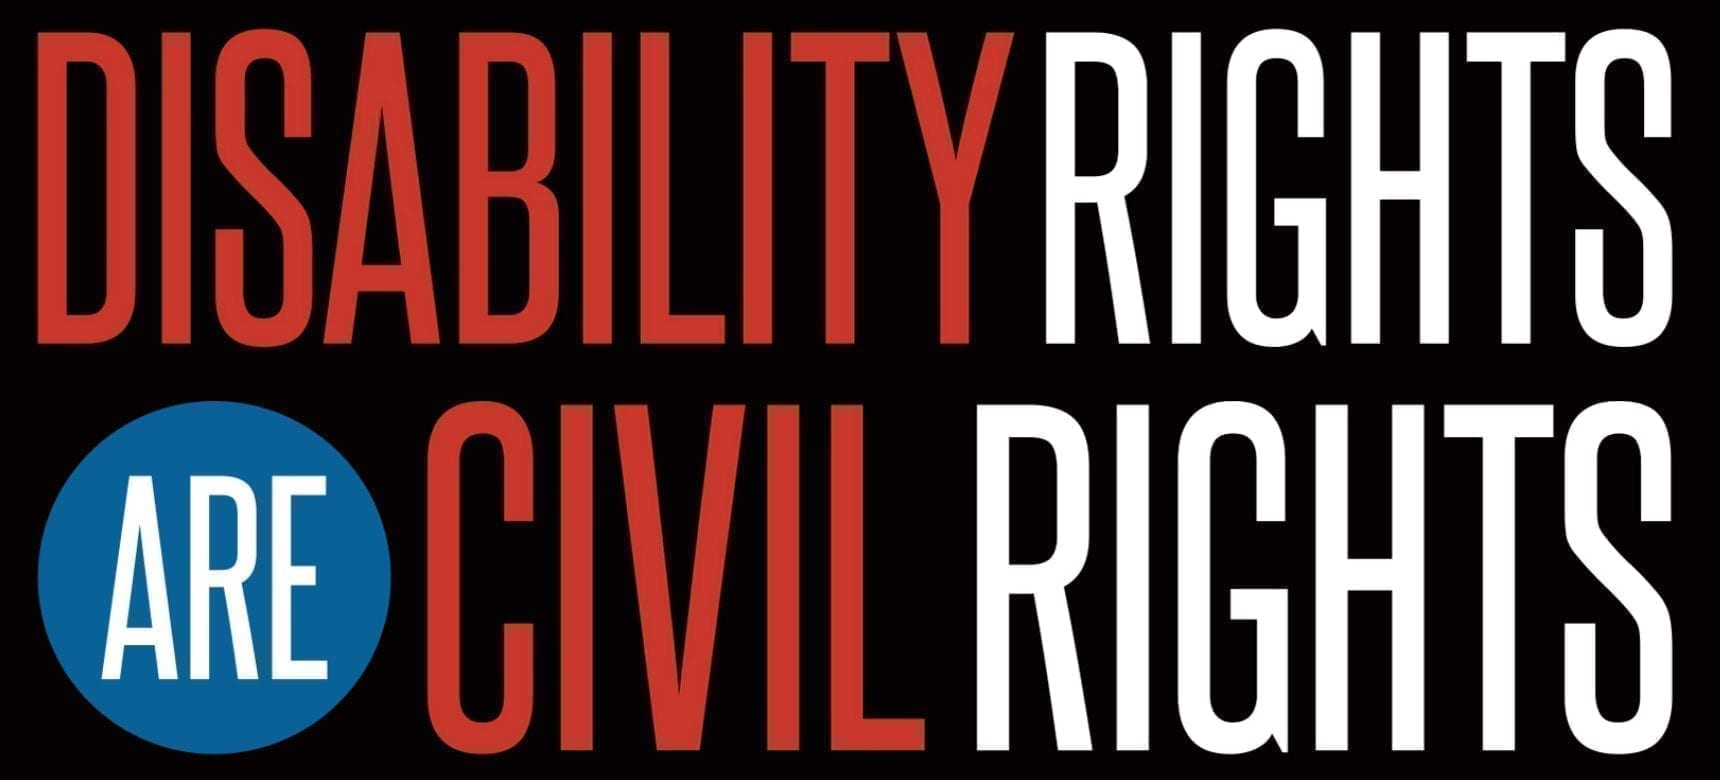 disability rights advocacy - image reads